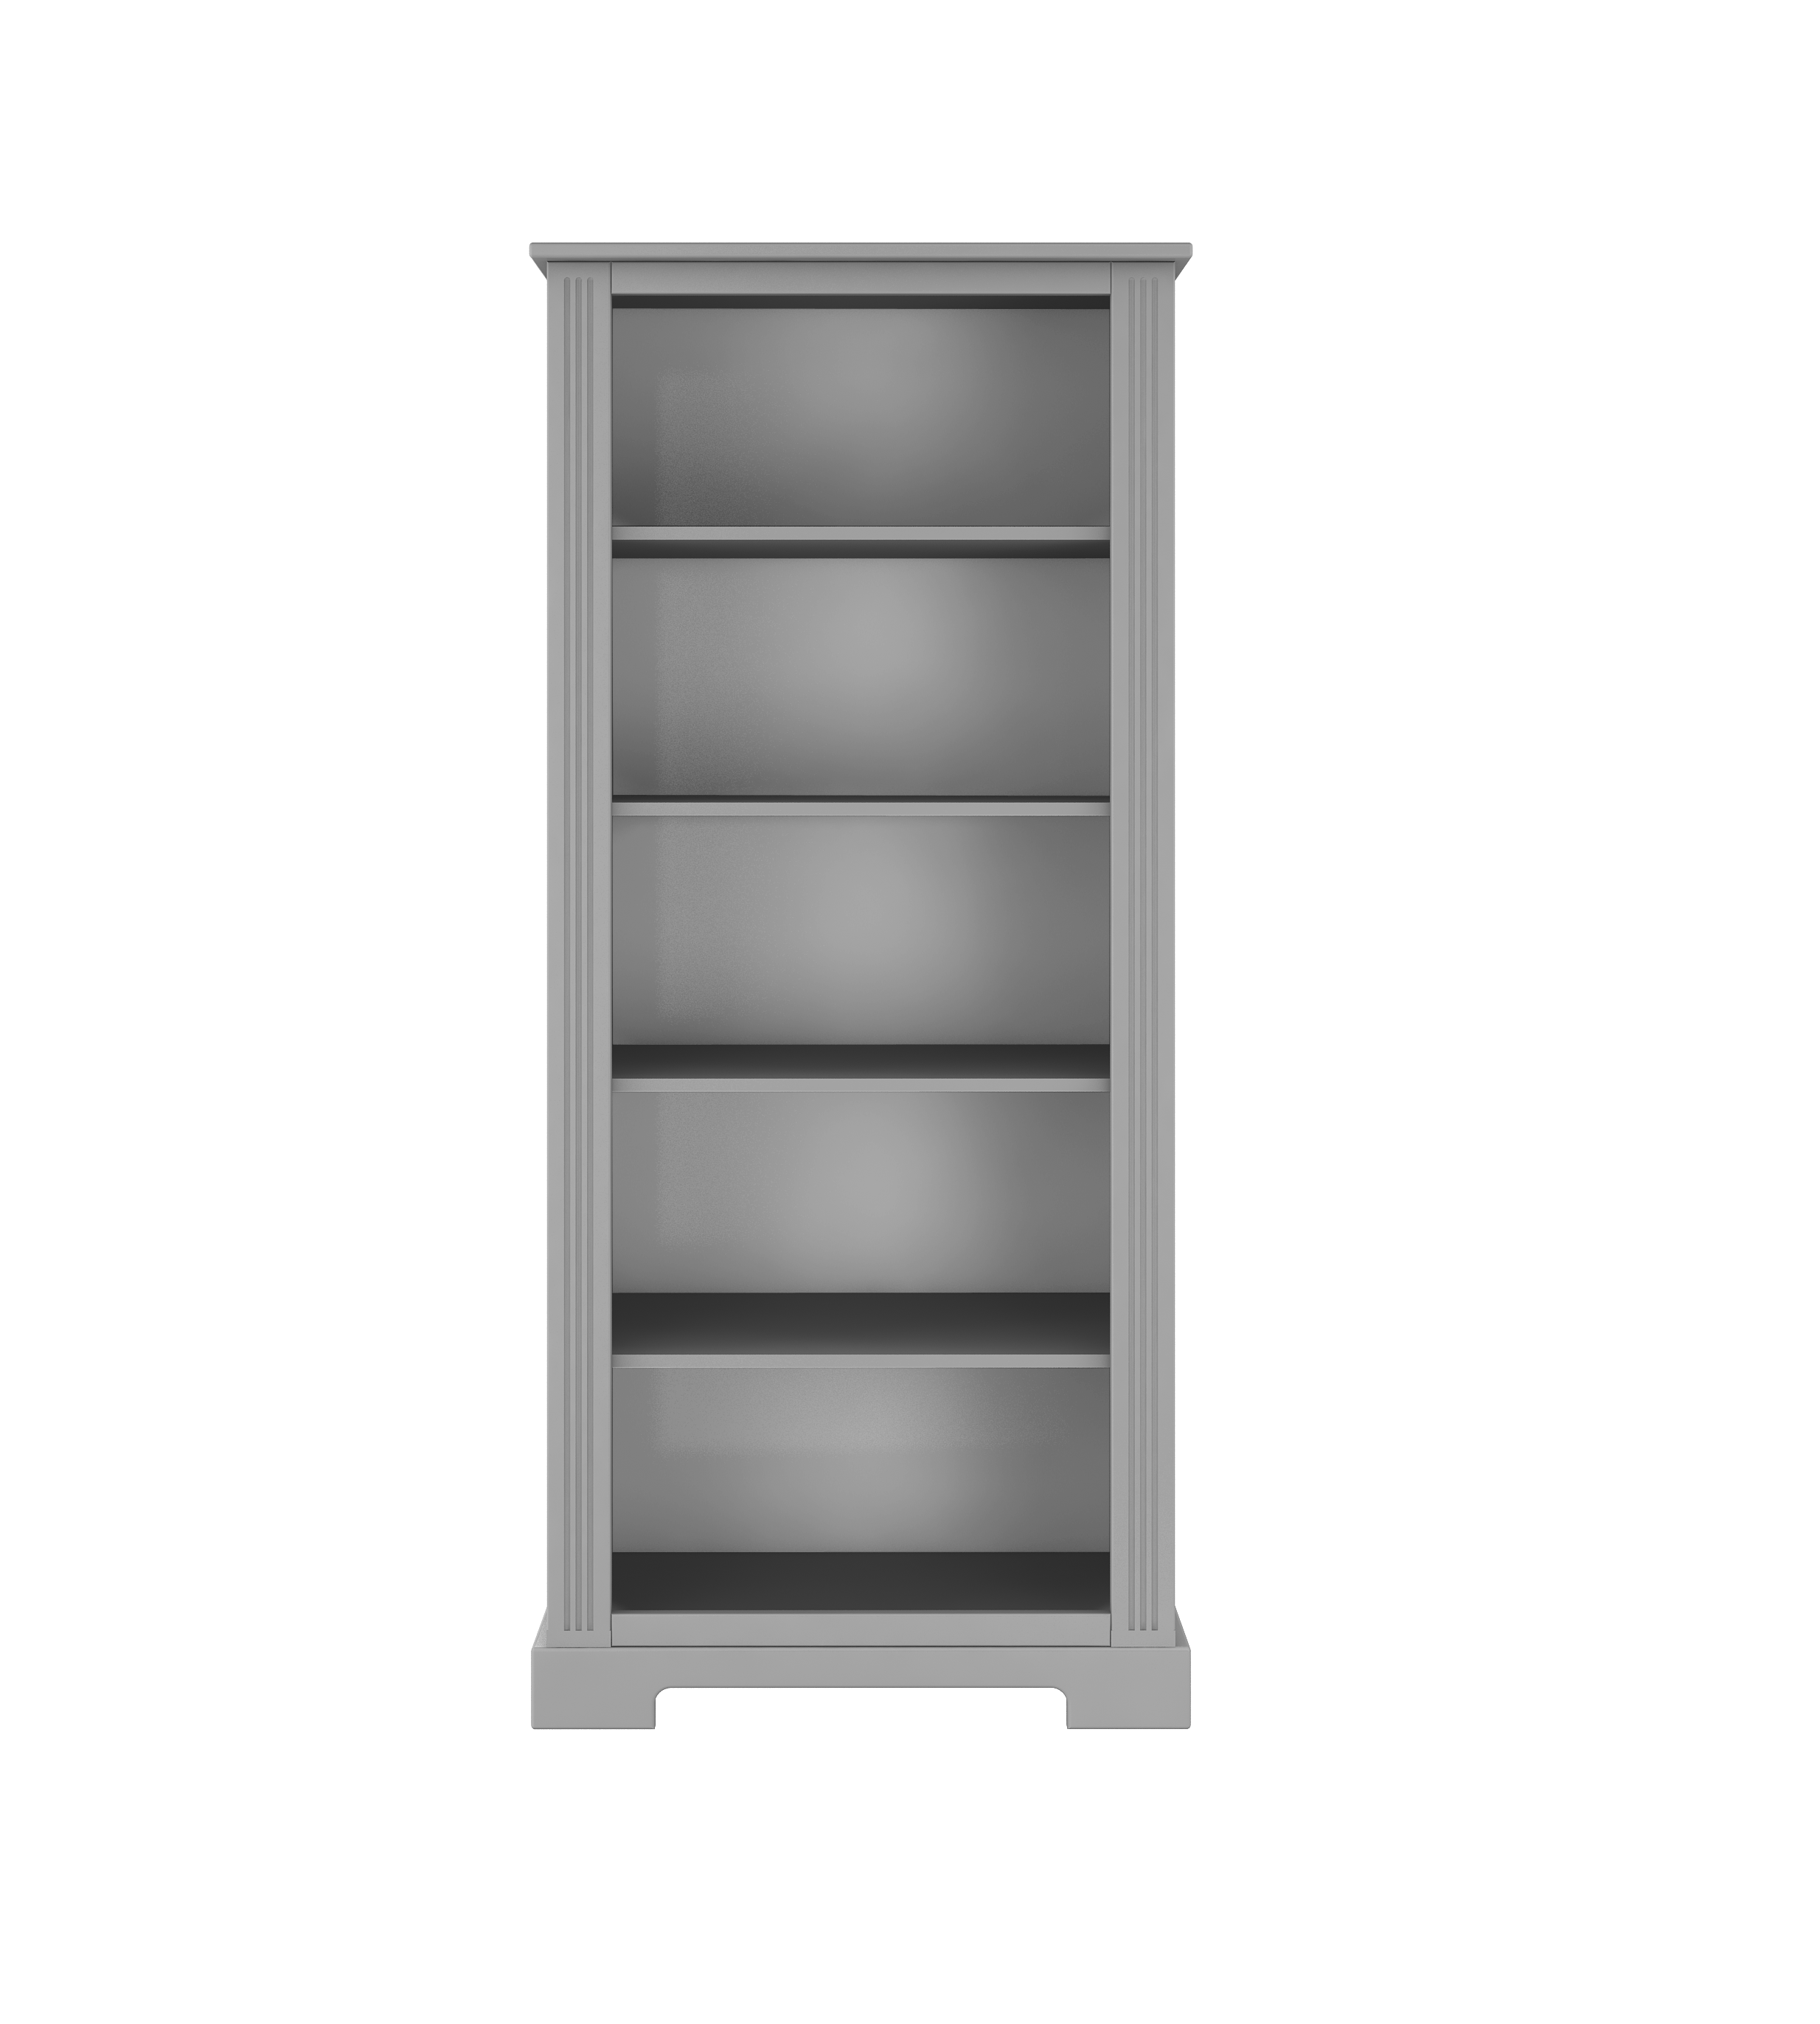 Ines grey bookcase 01 white back.png